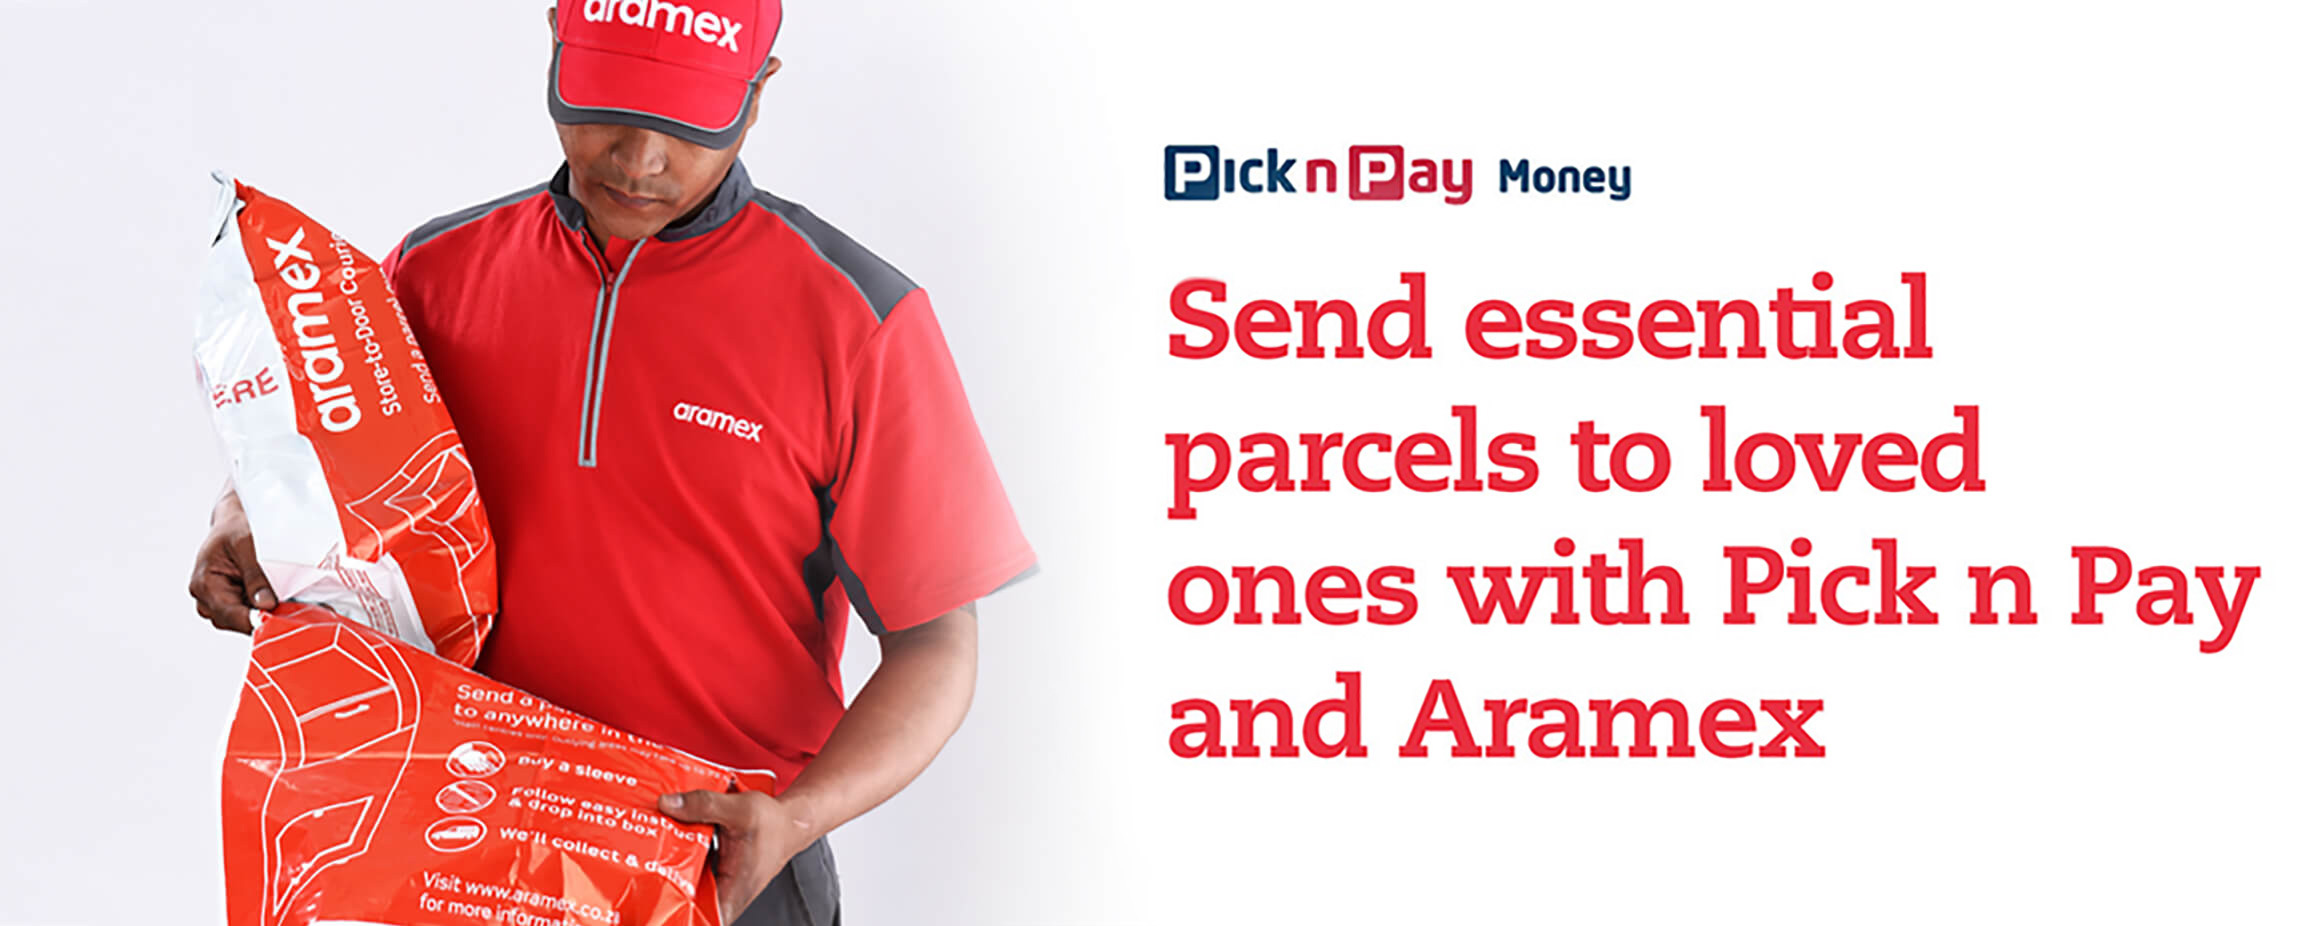 Send essential parcels to loved ones with Pick n Pay and Aramex